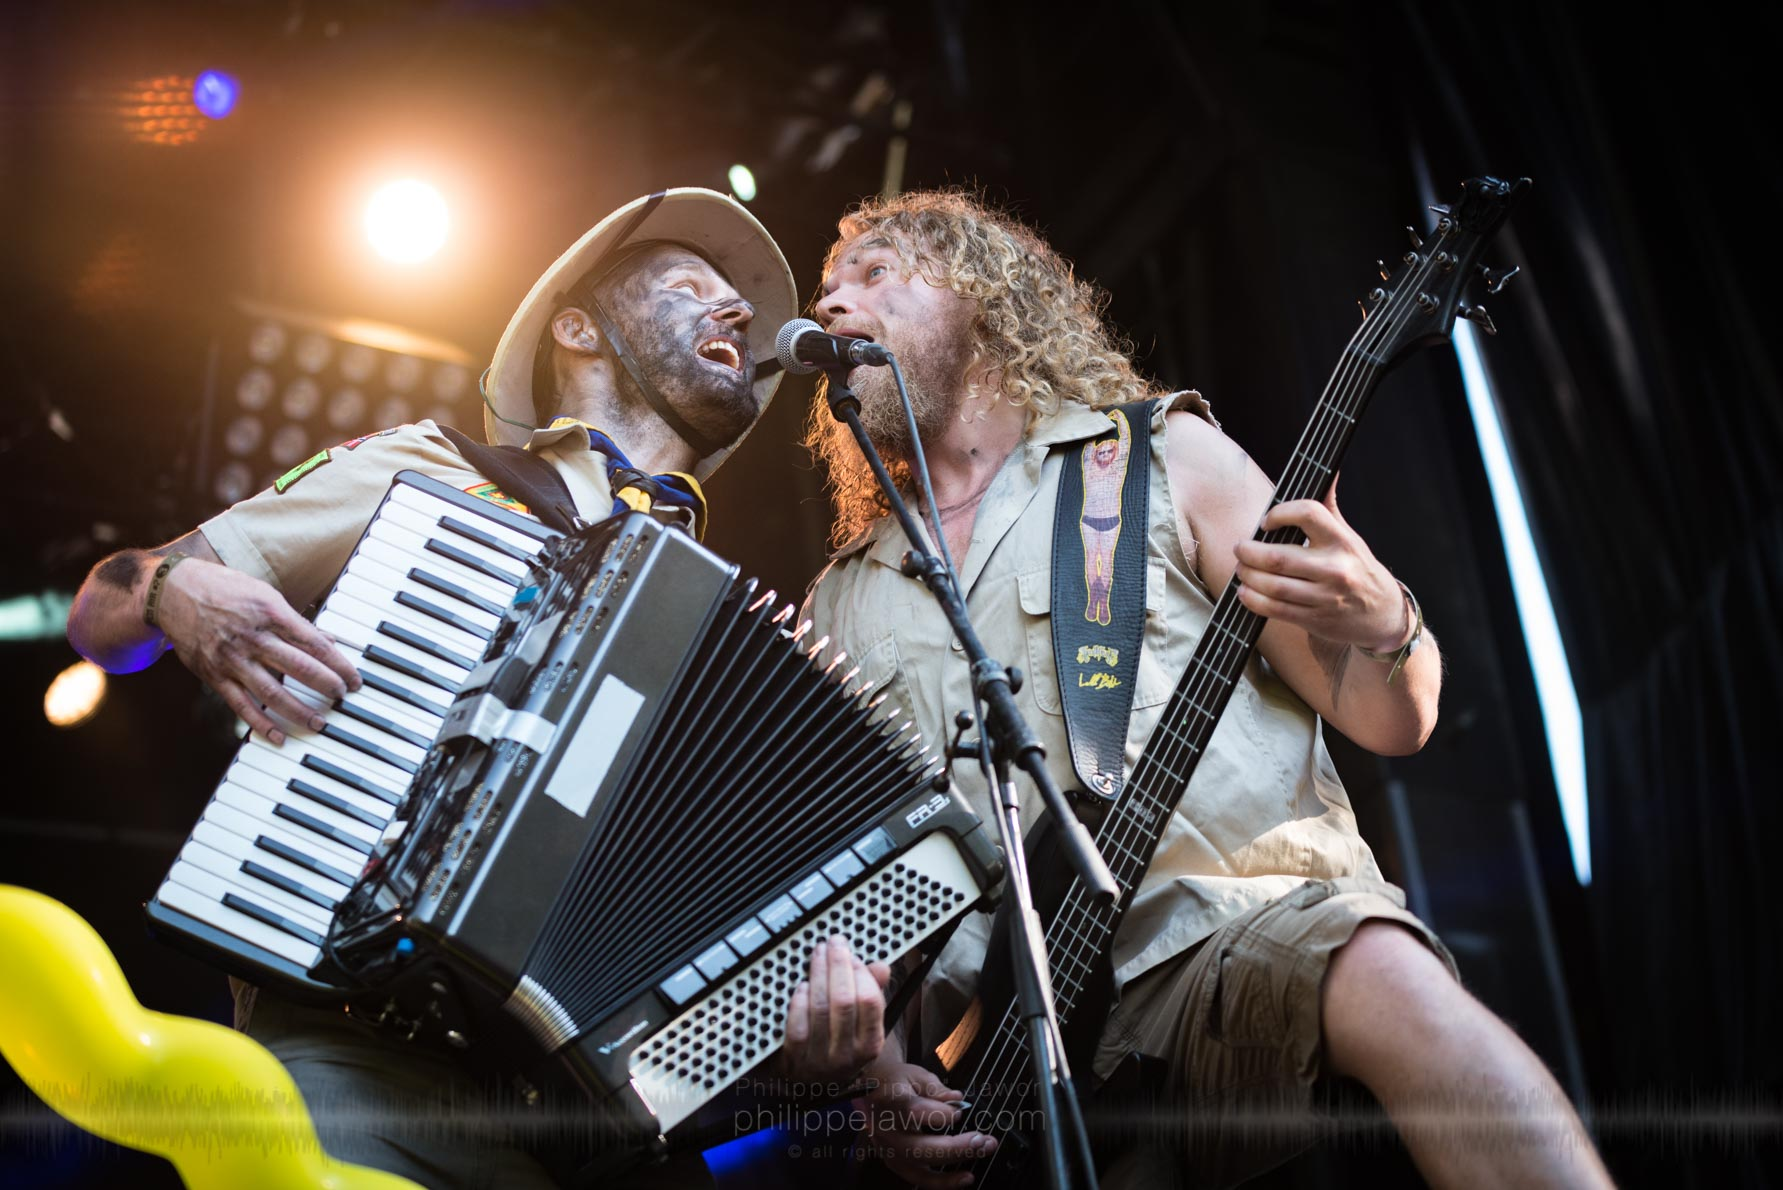 The Norwegian folk metal band Trollfest, live at Sylak Open Air festival, Saint Maurice de Gourdans, France, August 2017.  On assignment for Metal Obs' Magazine All rights reserved.